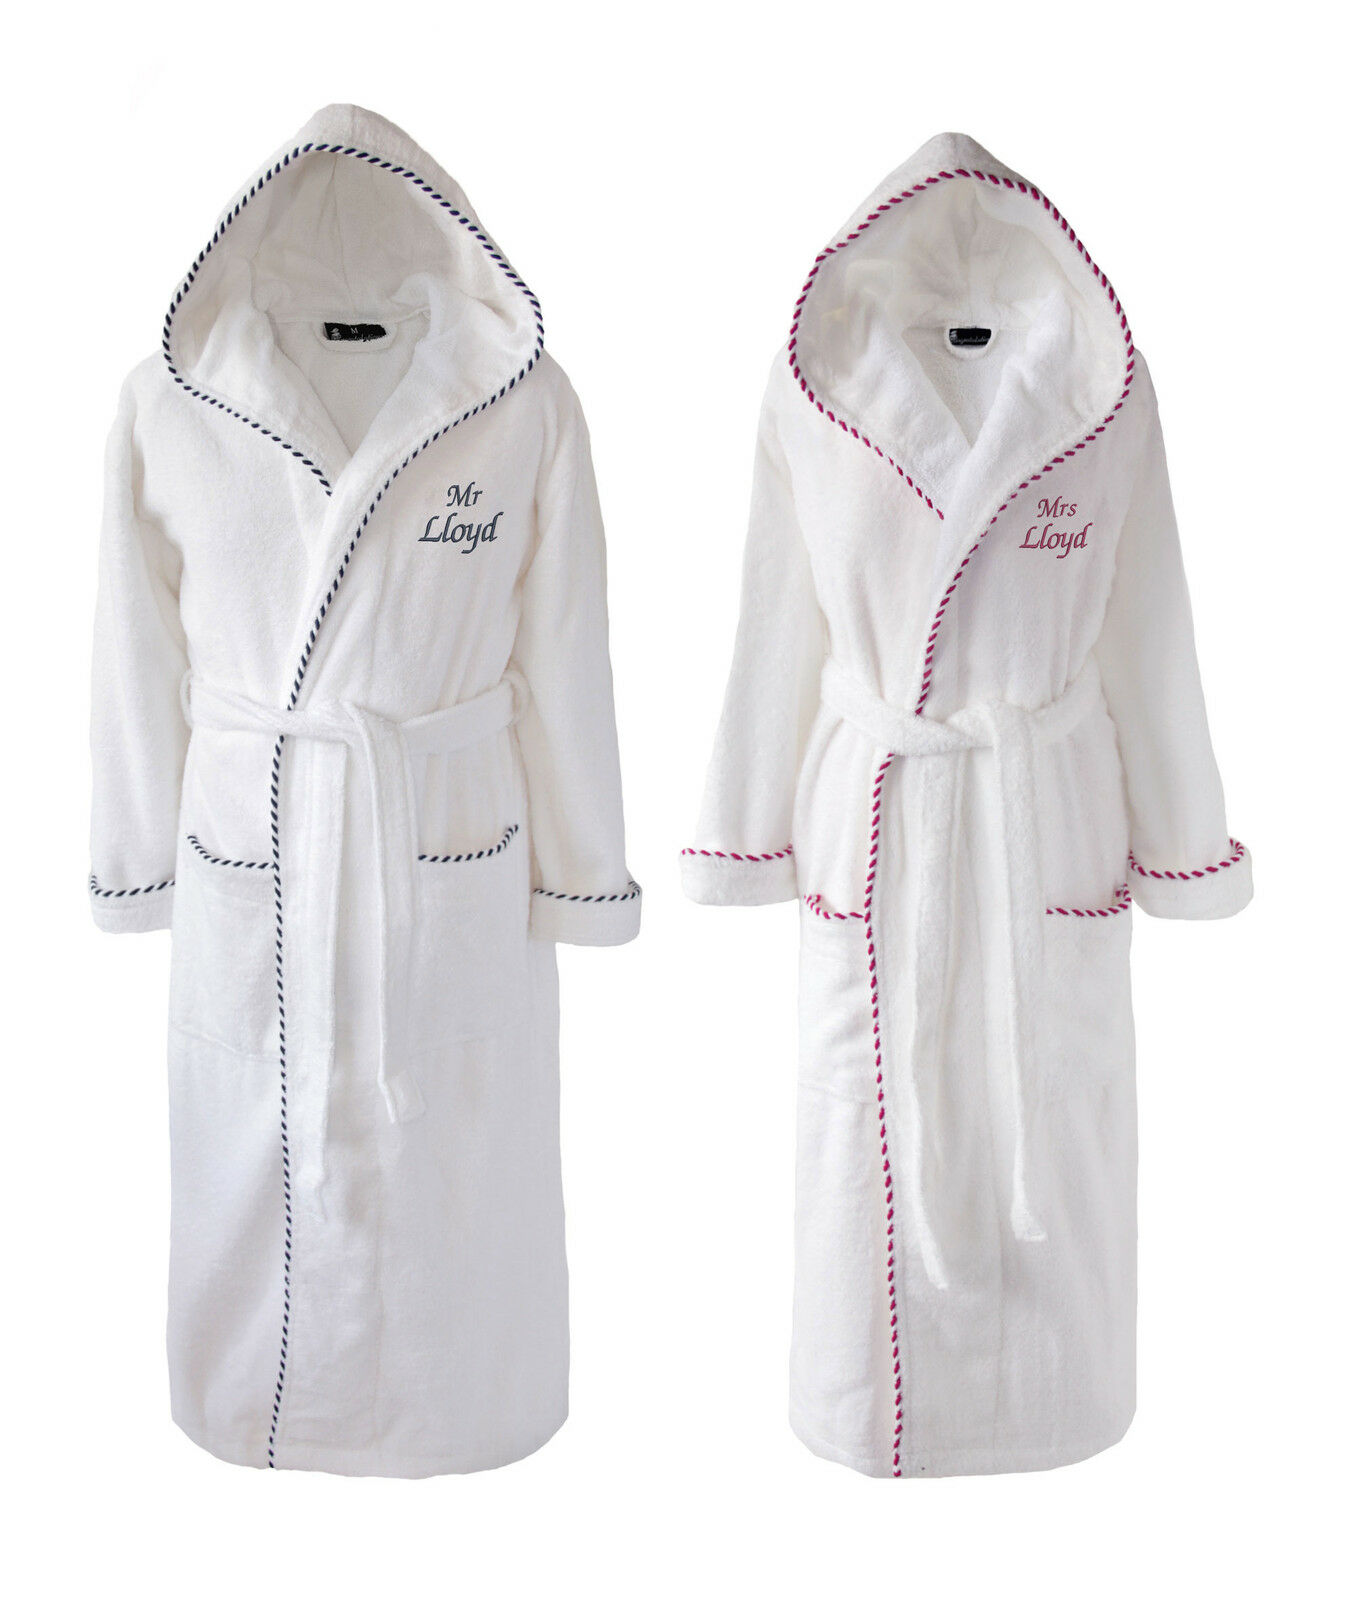 PERSONALISED MR & Mrs Set of White Bathrobes Dressing Gowns, His ...